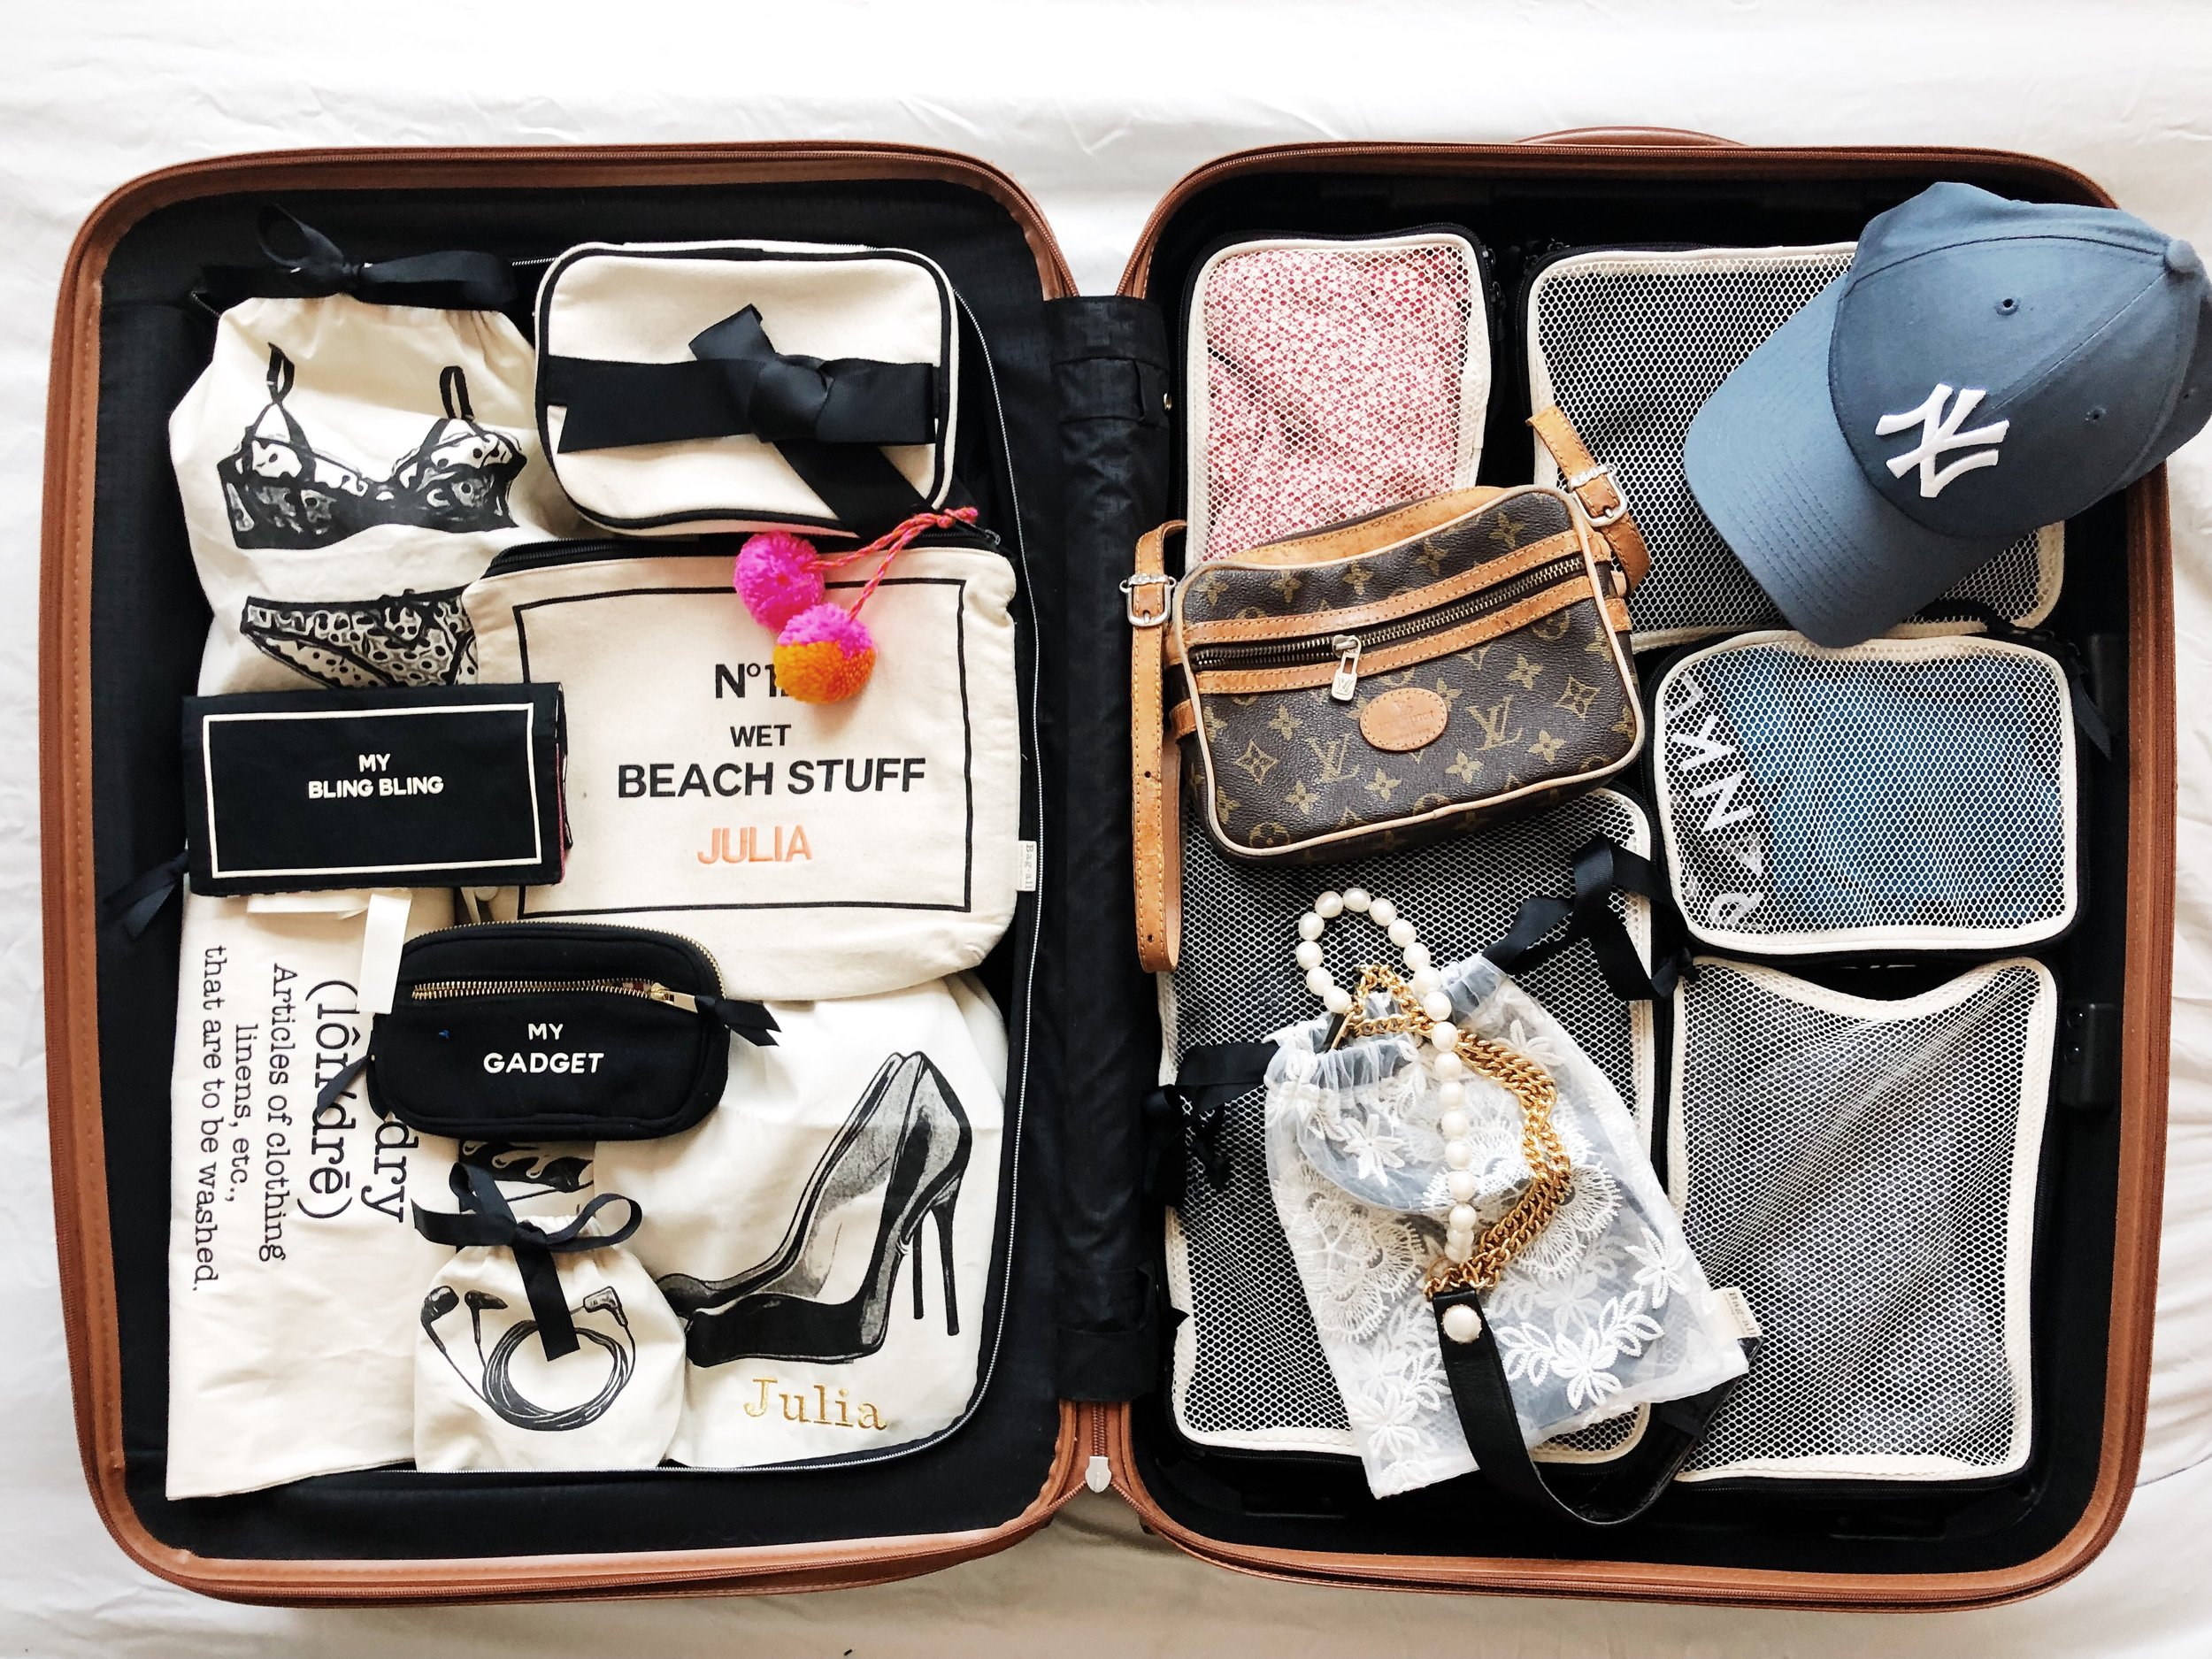 - PACKING LIST